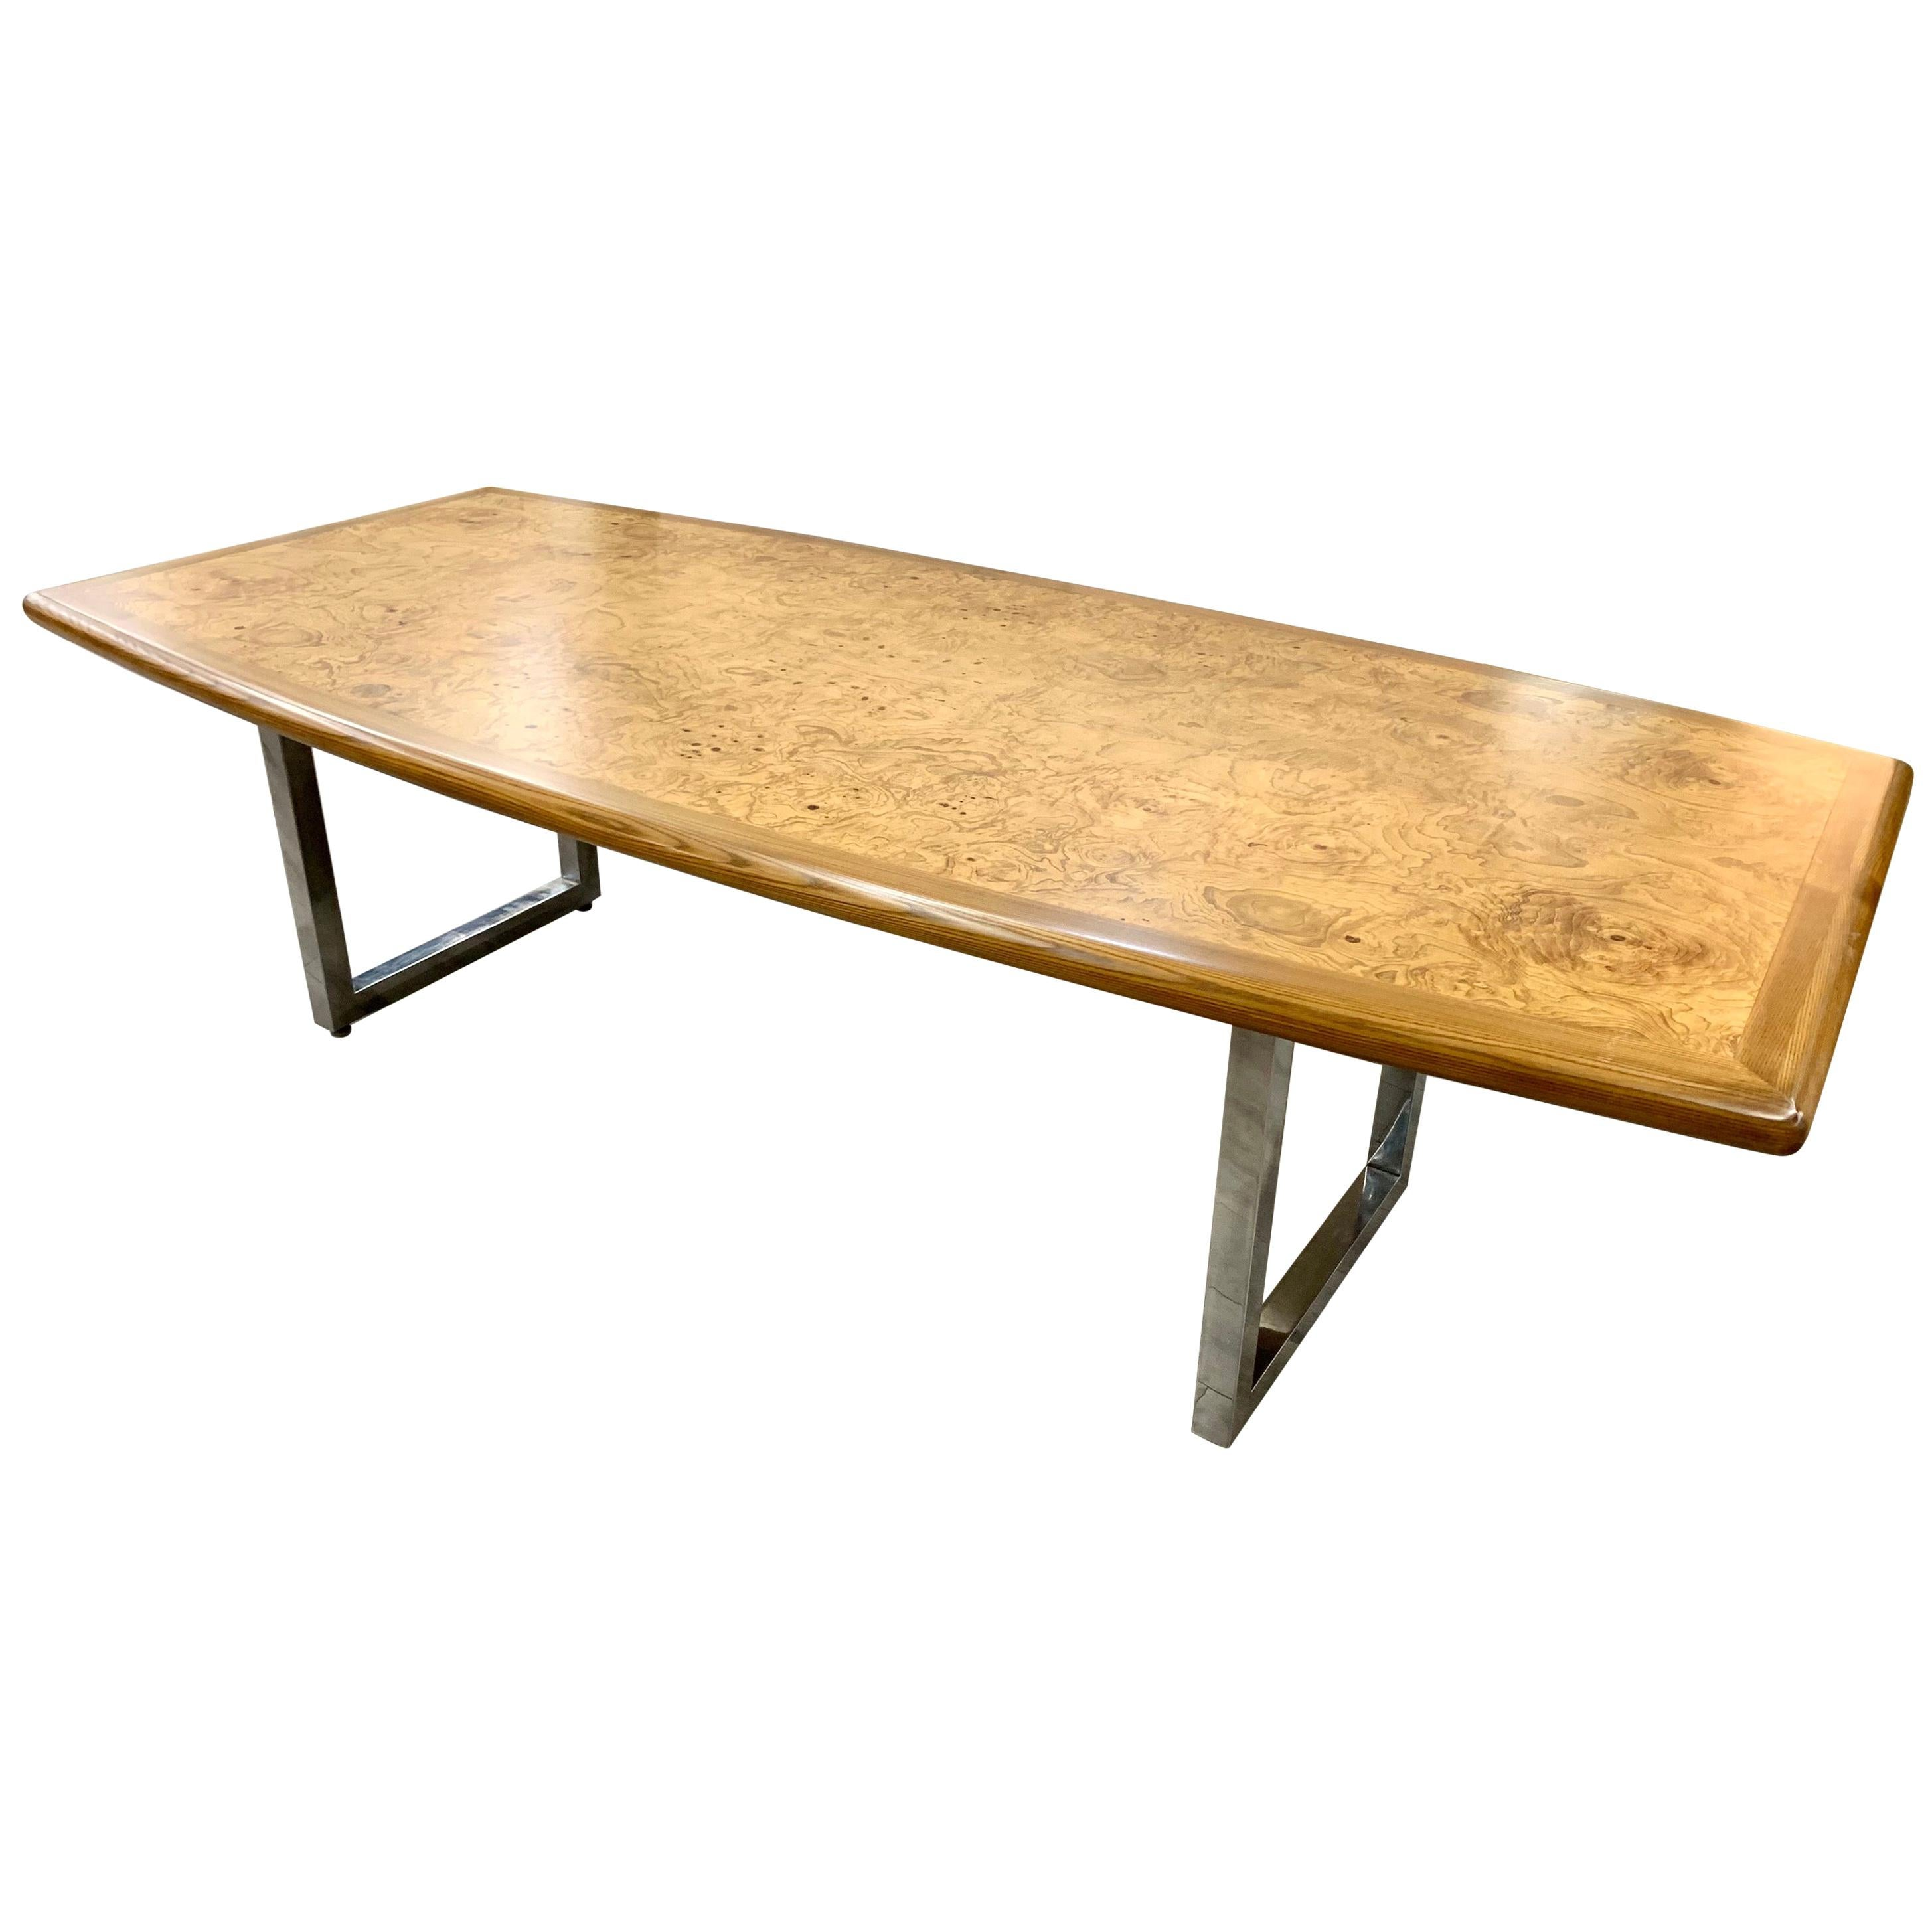 Burlwood and Chrome Boat Shaped Dining Table